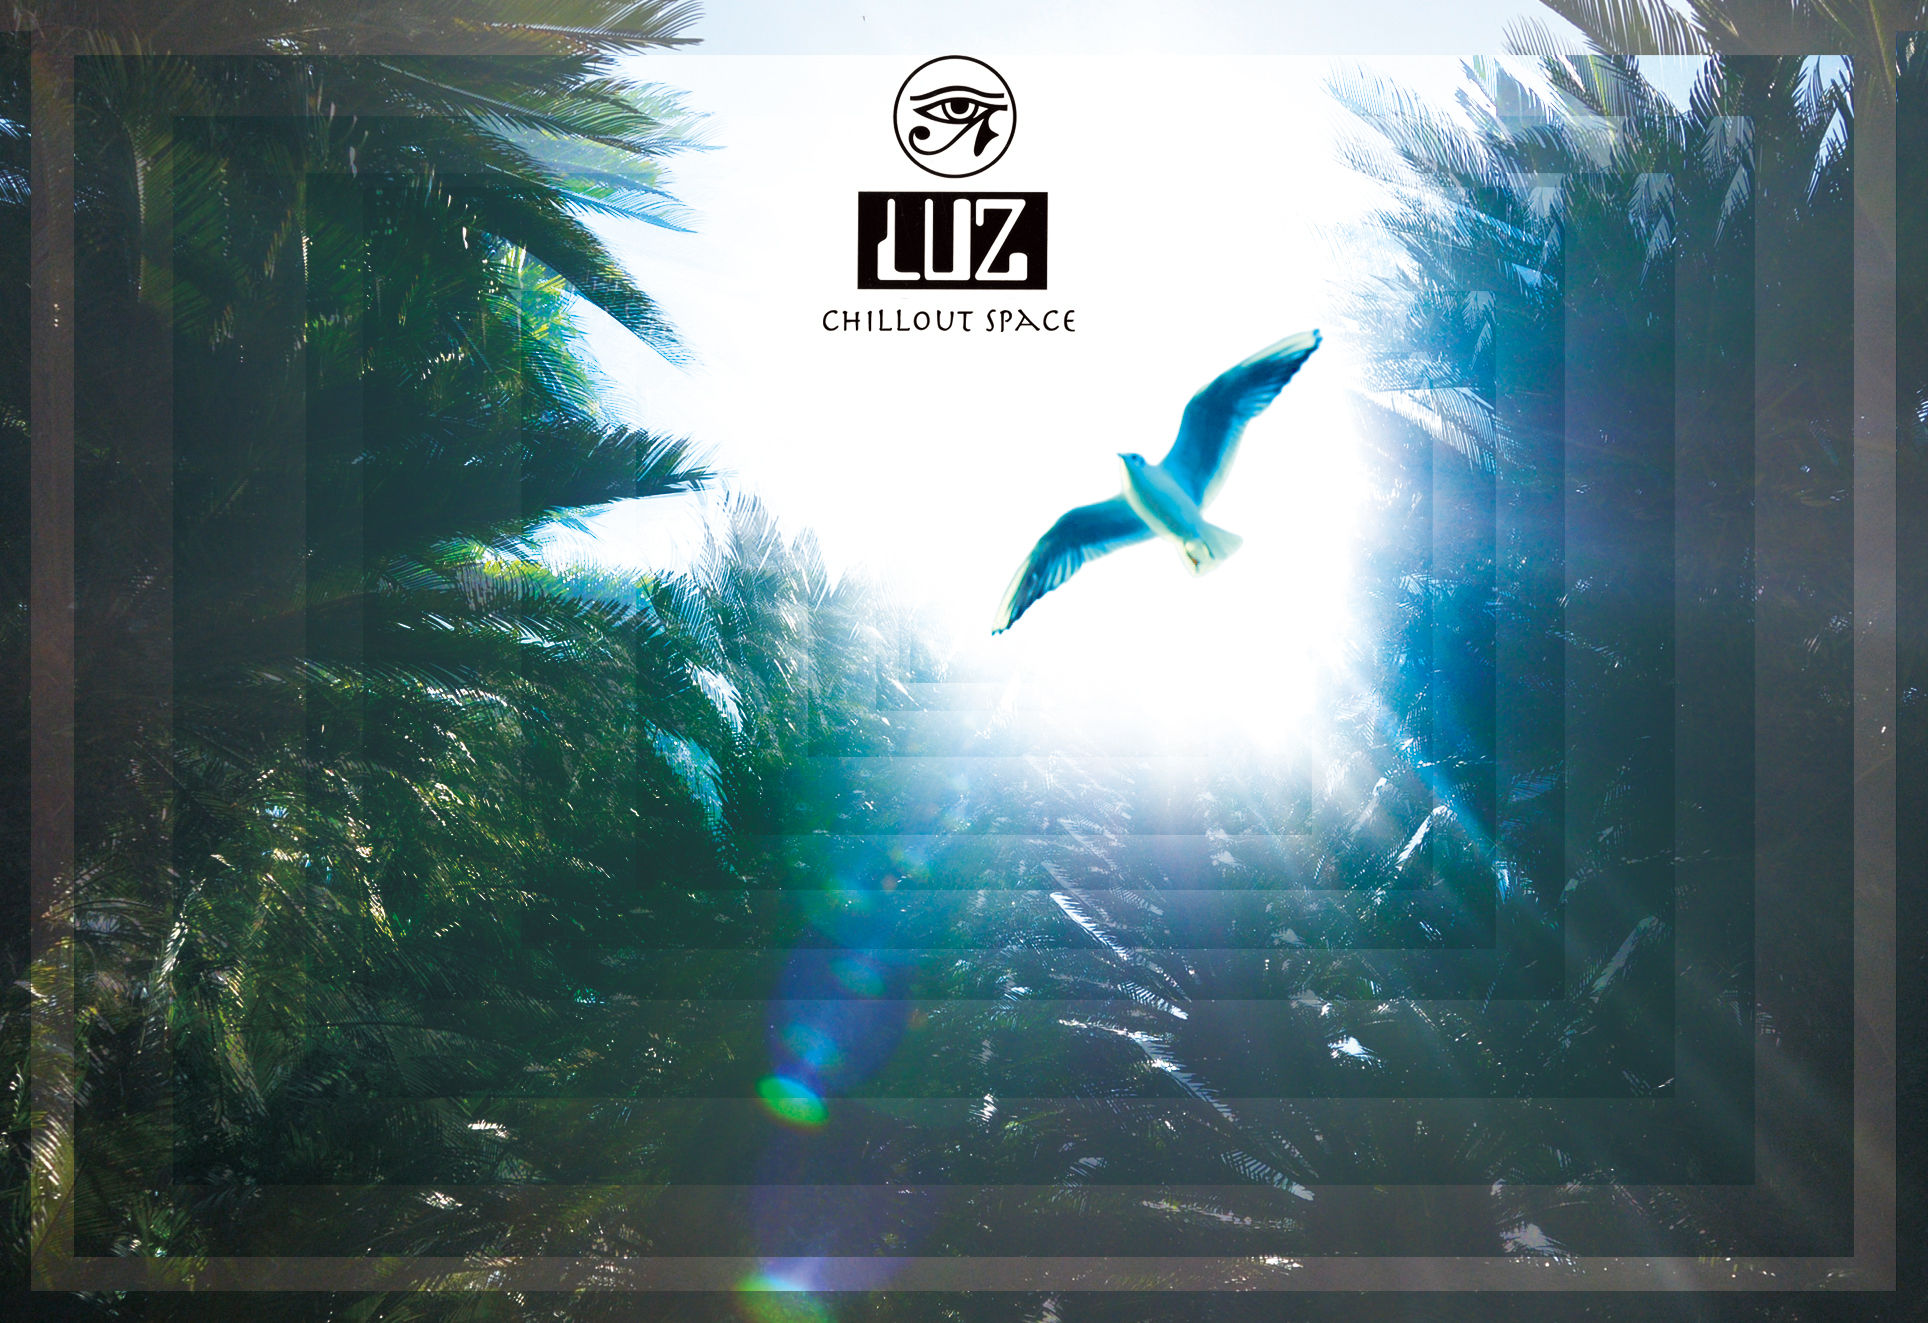 luz-chillout-space